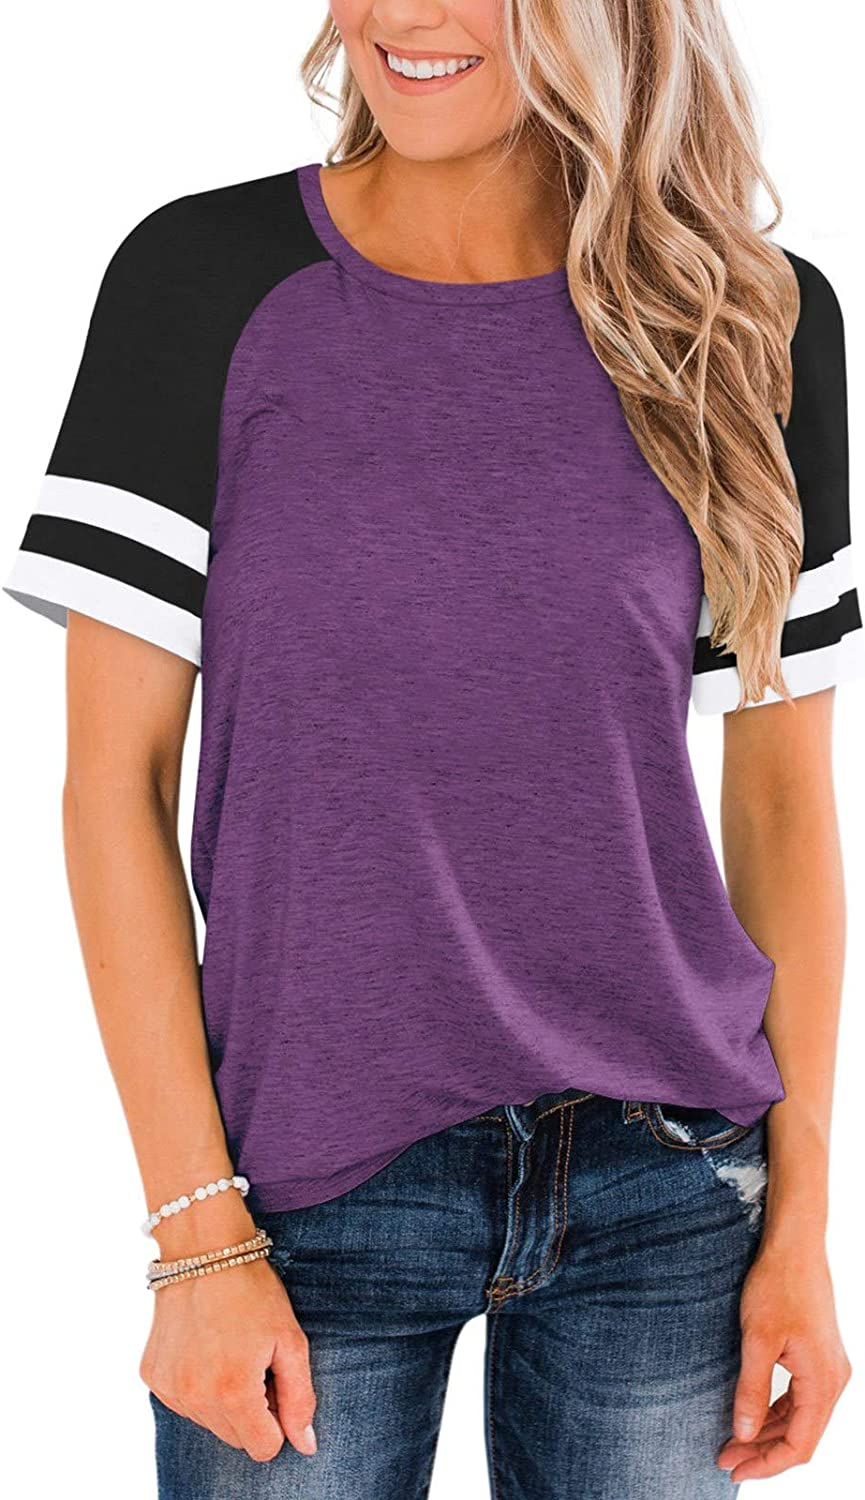 Cyanstyle Womens Raglan Short Sleeve Crew Tees Shirts Same day shipping 25% OFF Color Neck